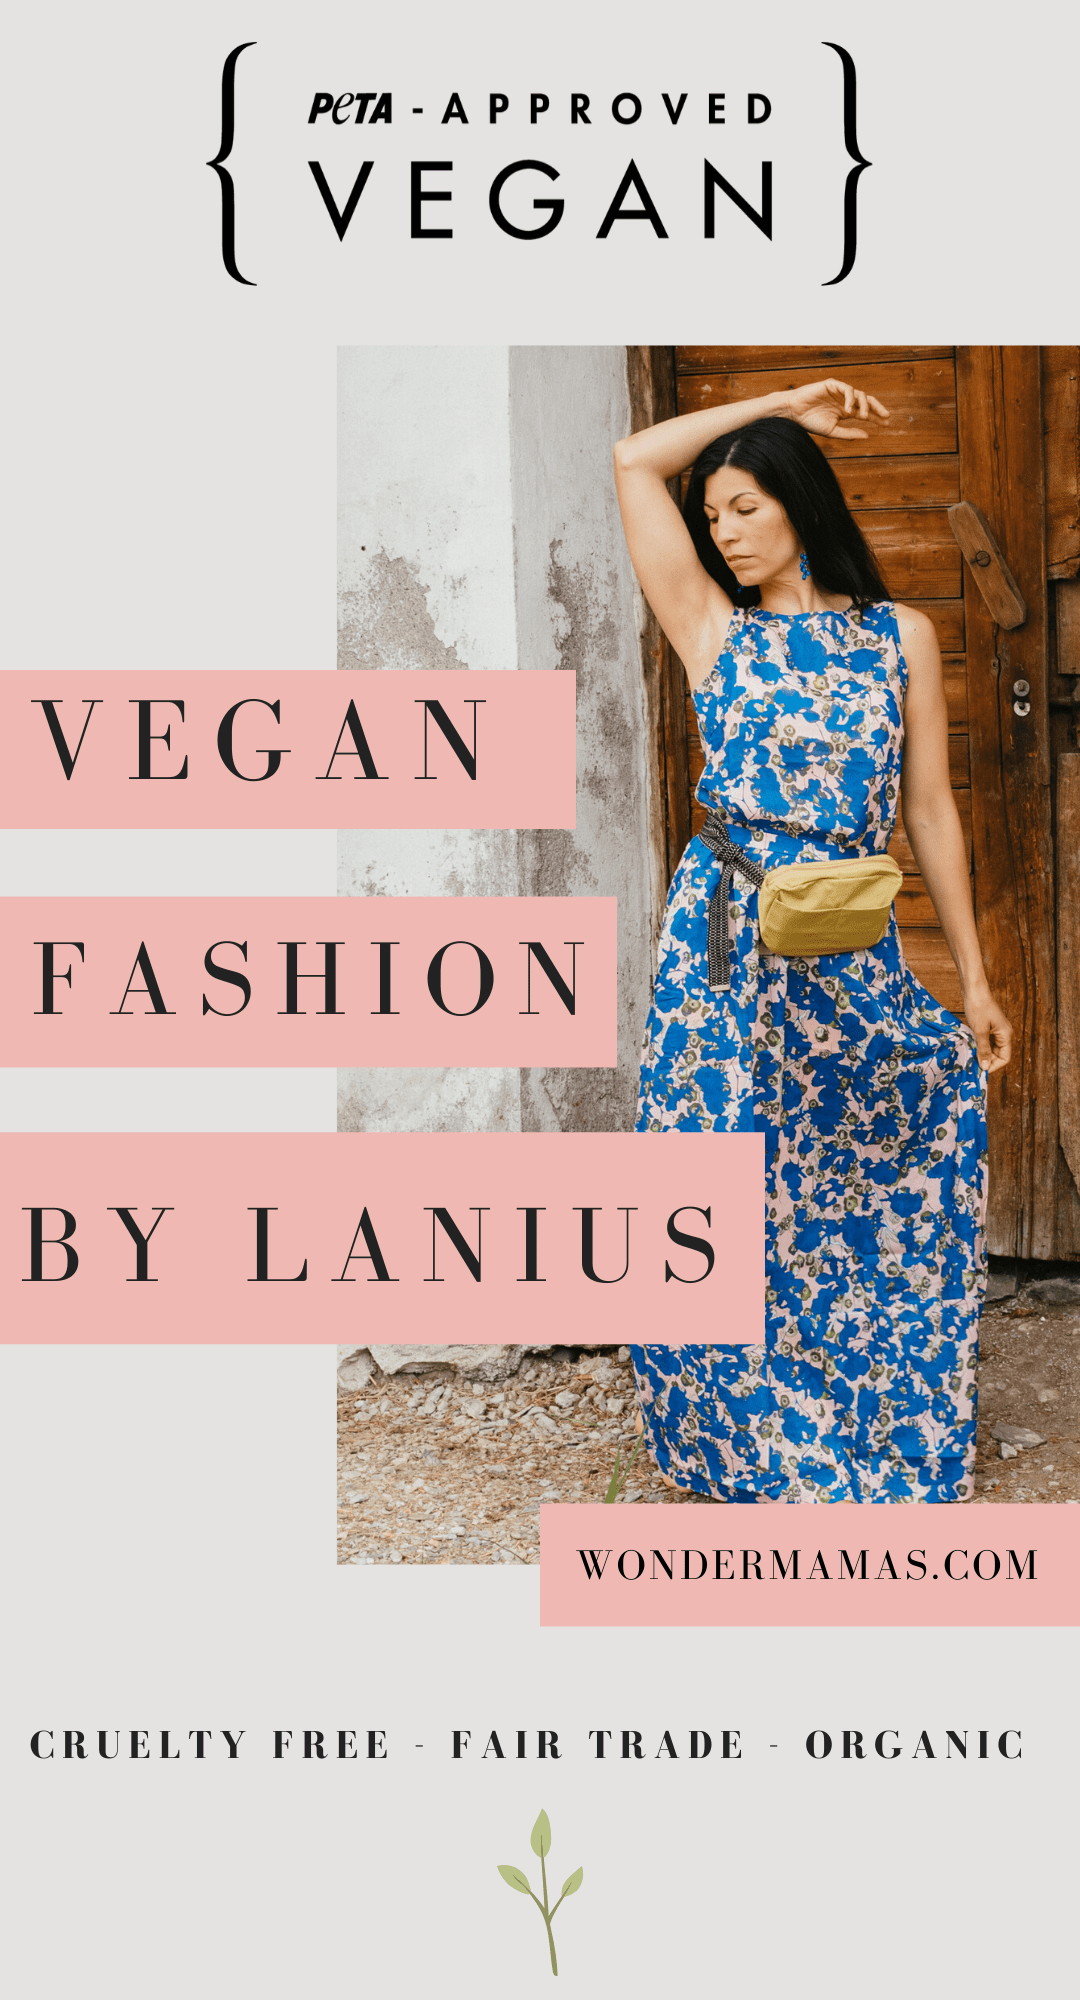 Vegan & Sustainable Fashion by Lanius